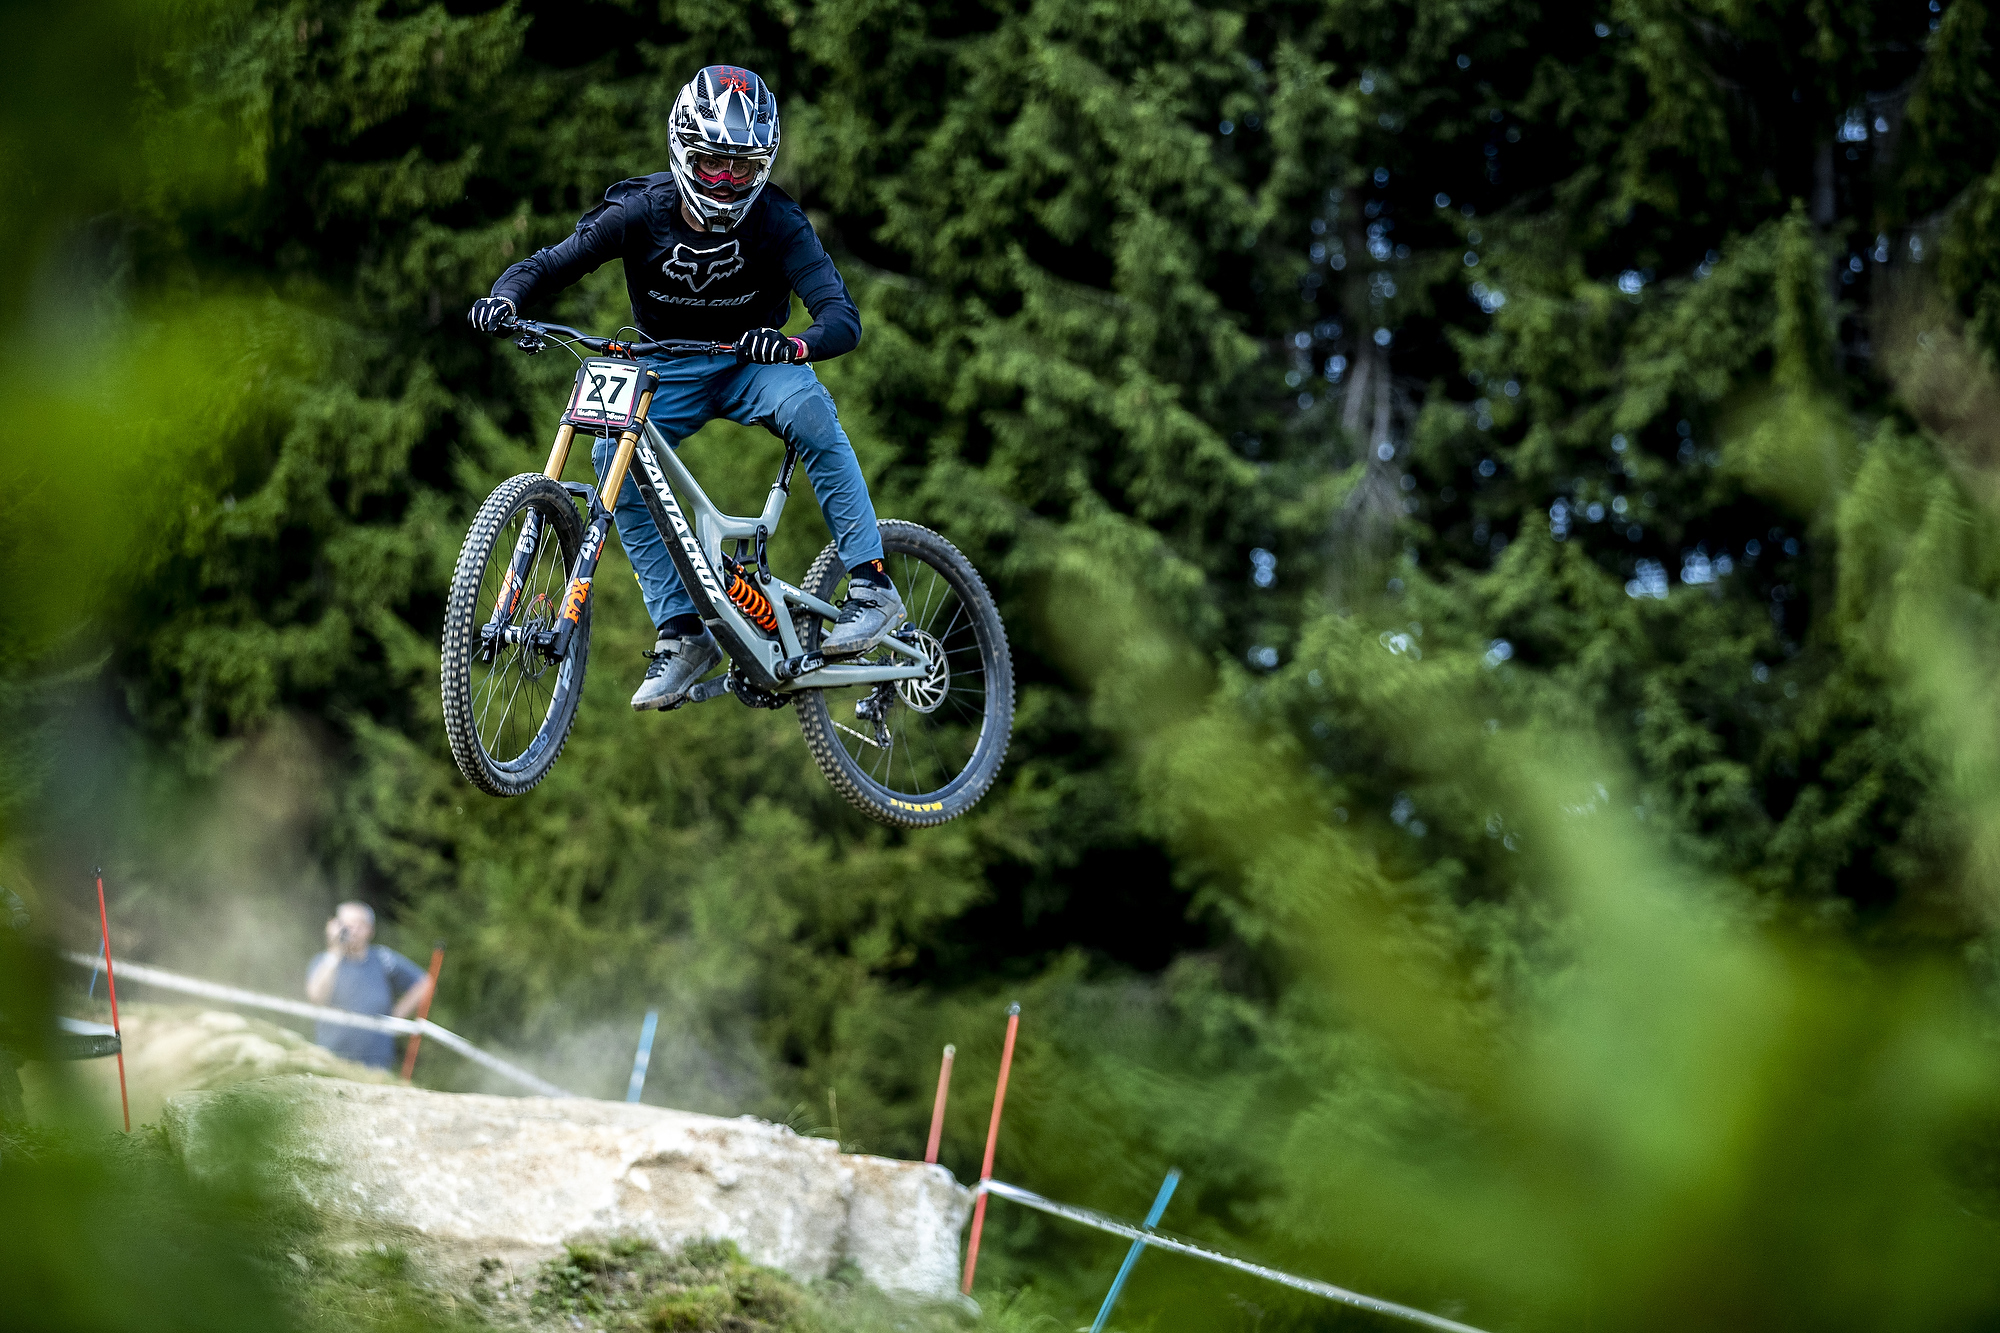 Finn sending it large at the Val di Sole World Cup. PC Sven Martin